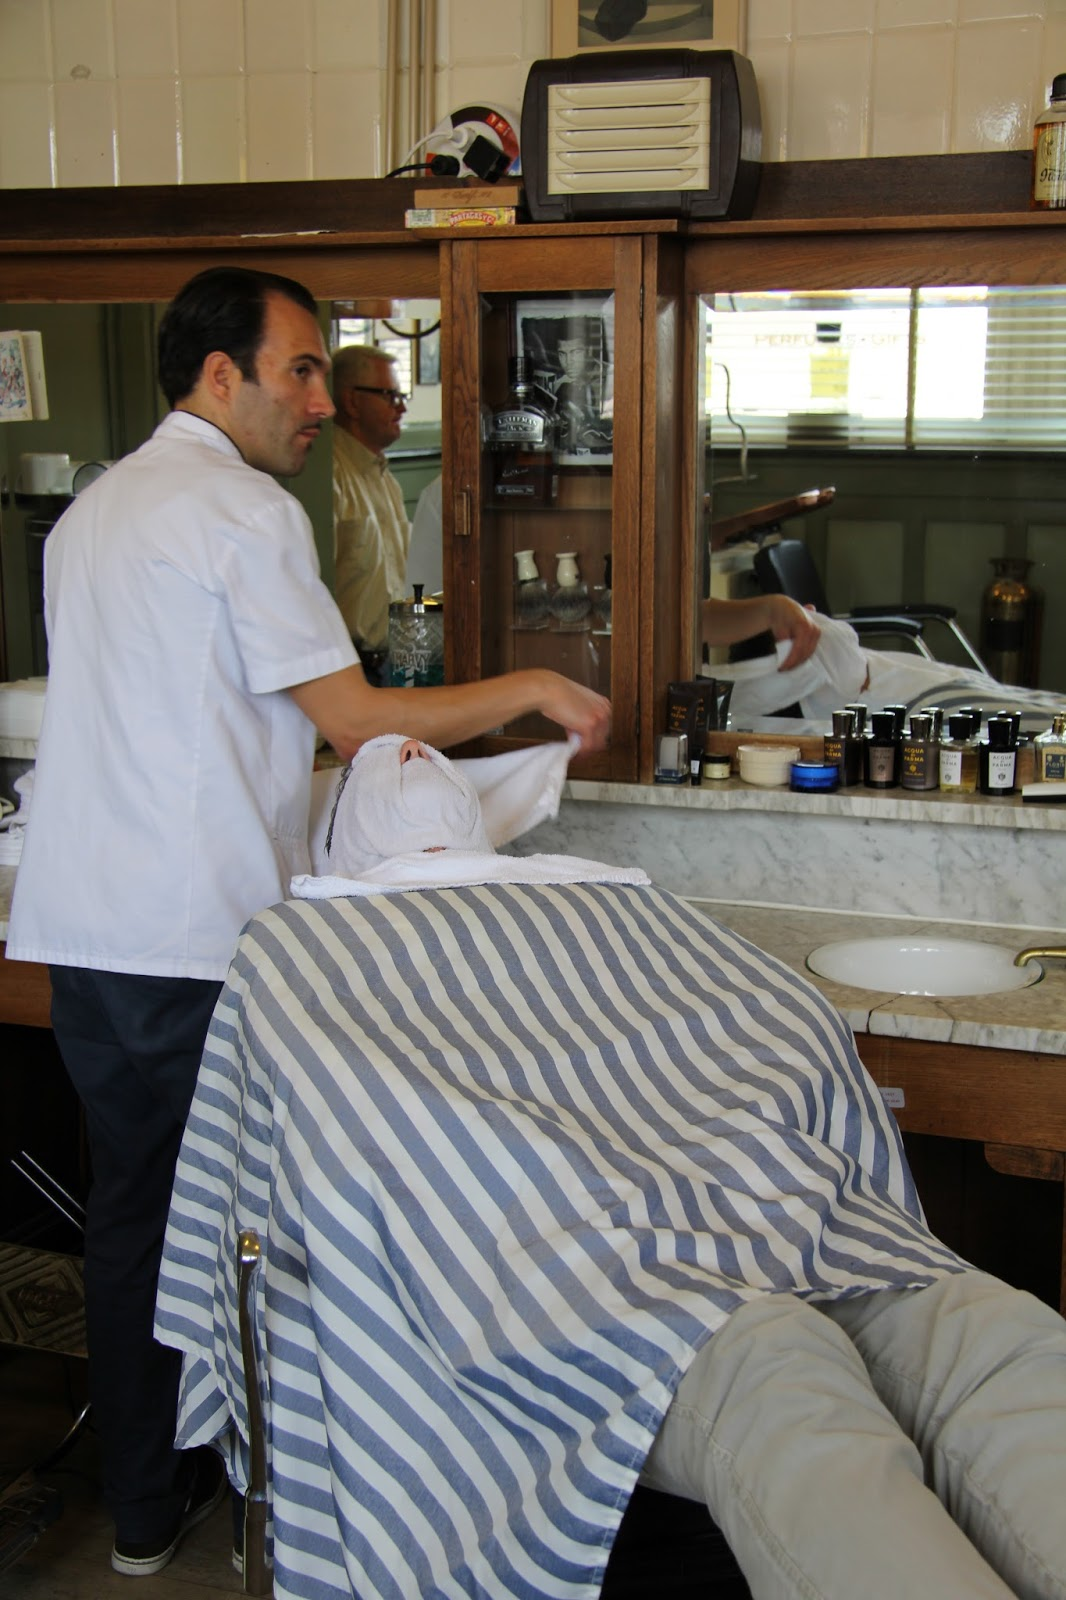 CHADS DRYGOODS CHAD GETS AN ITALIAN SHAVE  NEW YORK